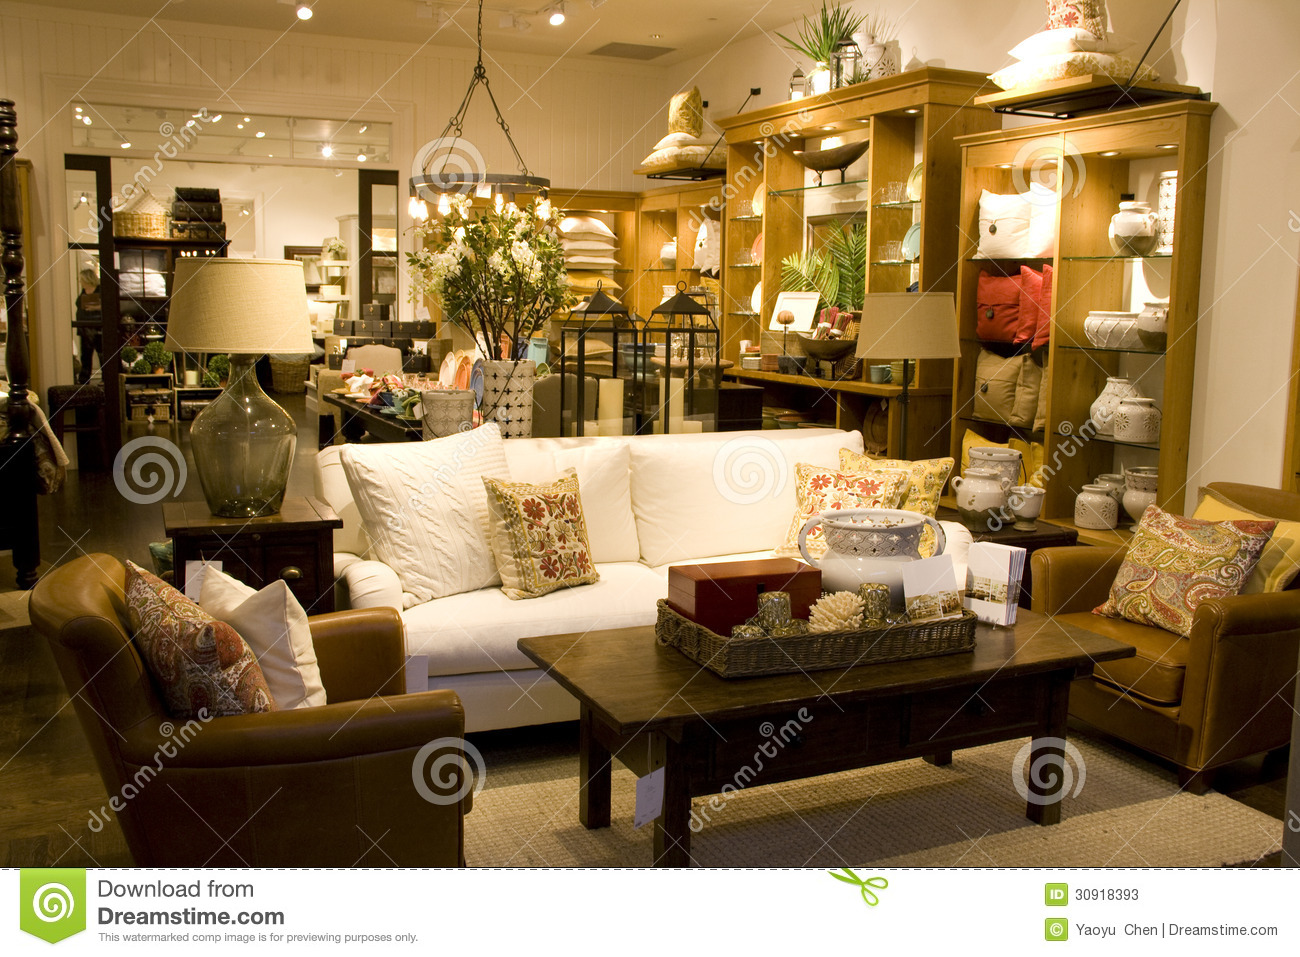 home decor online stores canada furniture and home decor stock image image 30918393 12345